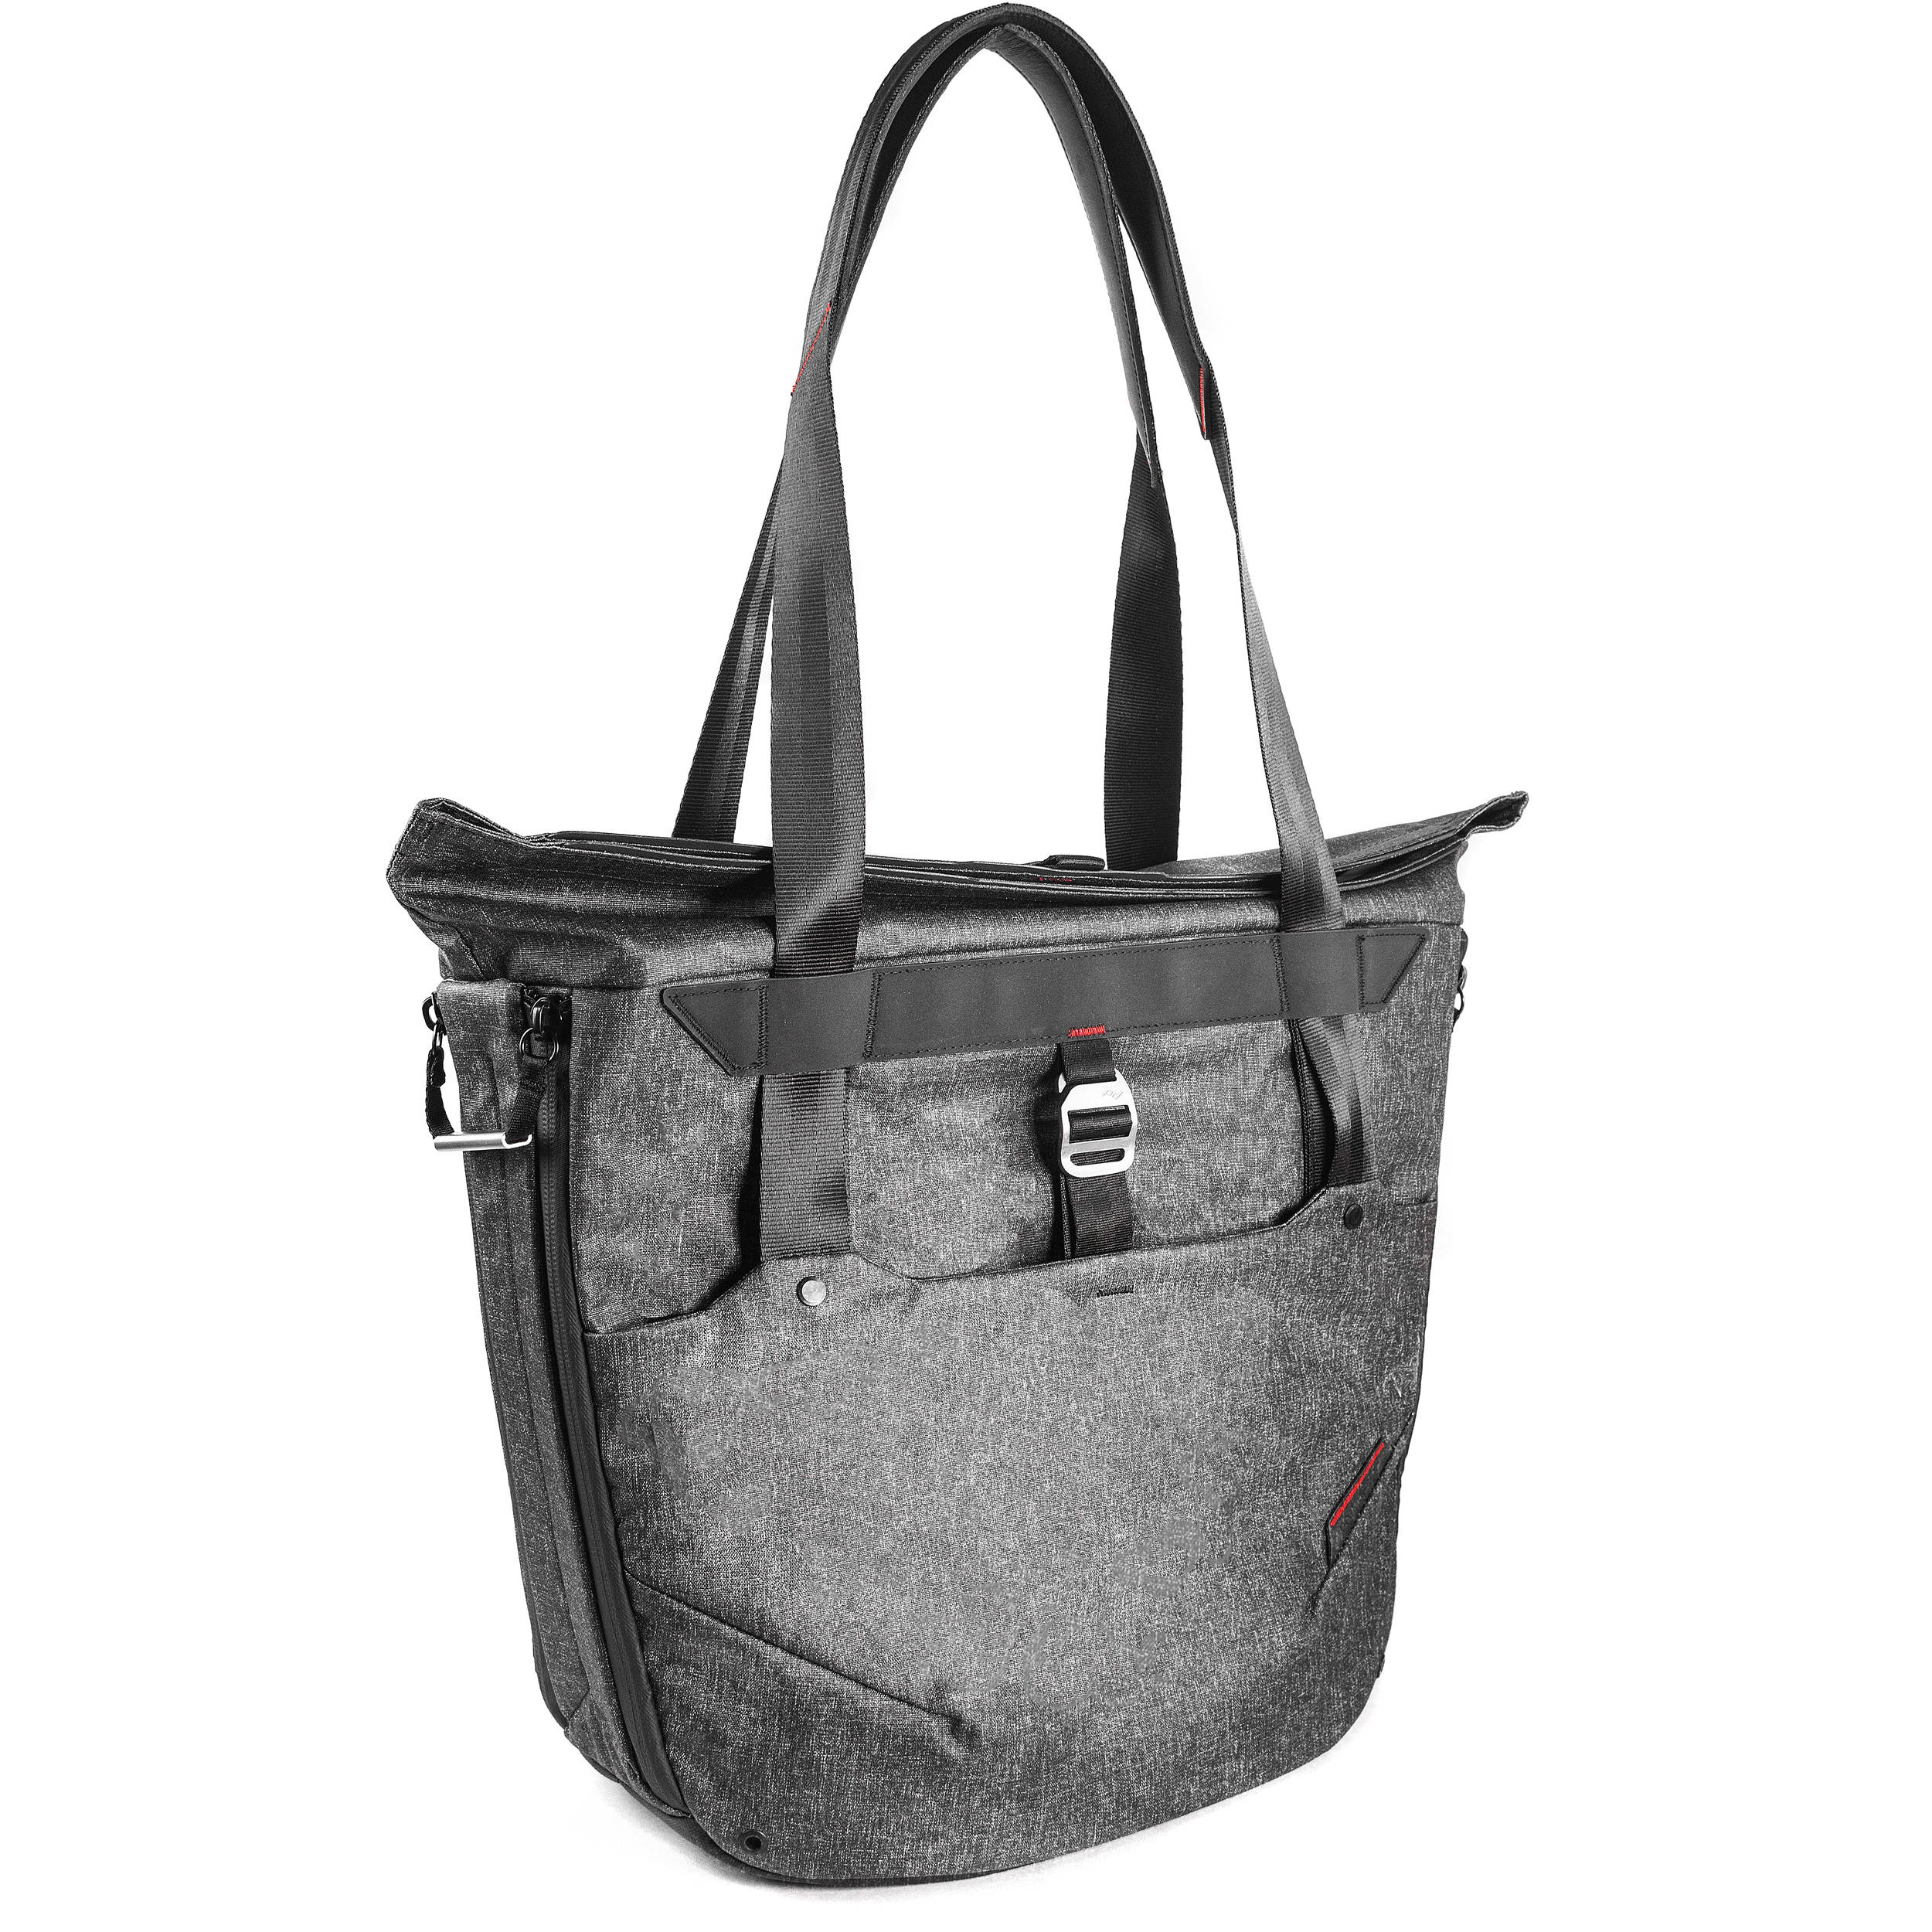 Peak Design Everyday Tote Bag Charcoal